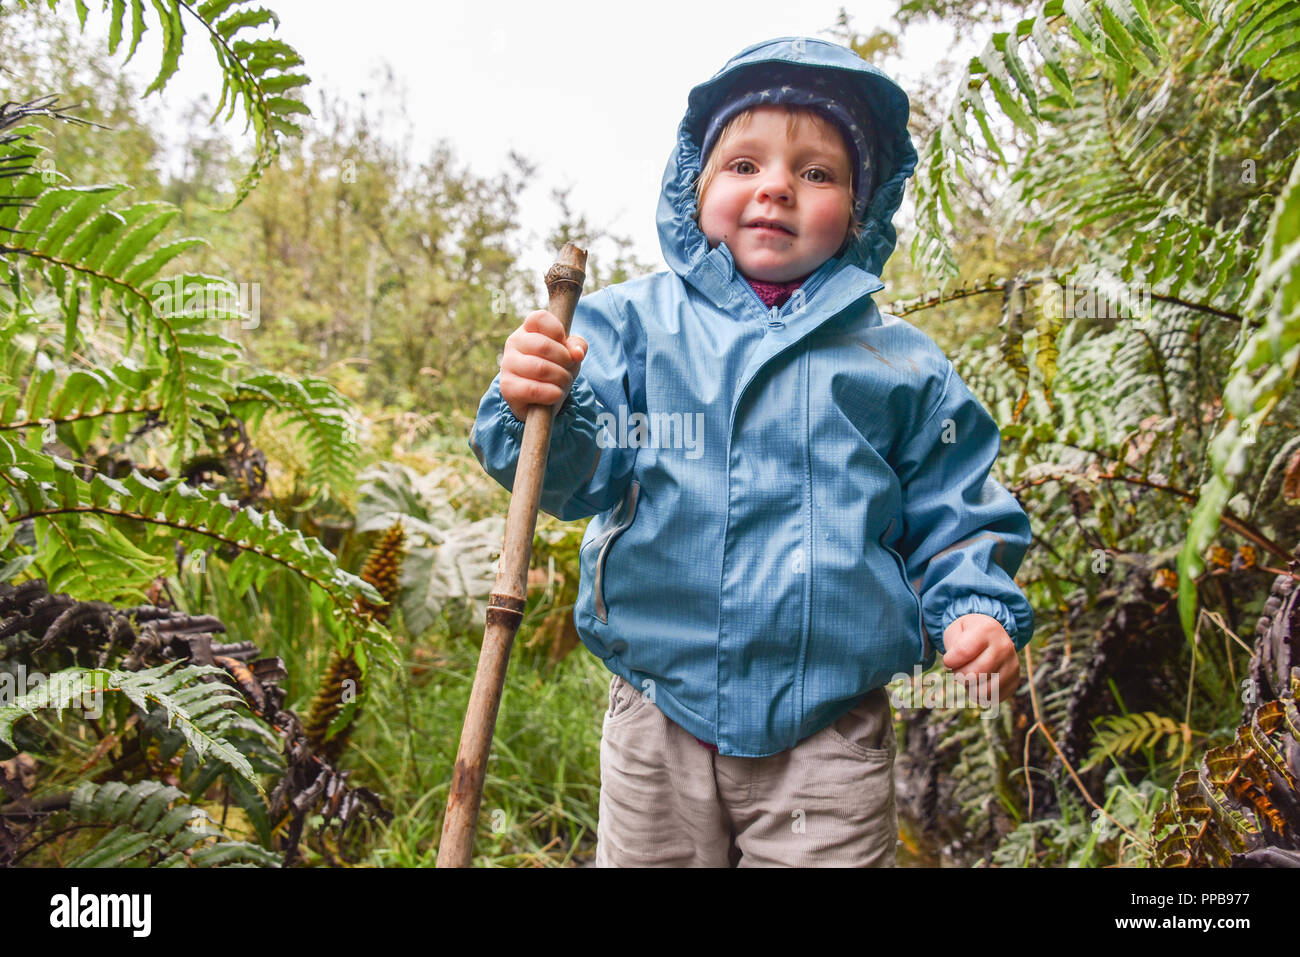 Little girl hiking in El Bosque Encantado, temperate rainforest with moss and lichen, Carretera Austral, Queulat National Park - Stock Image